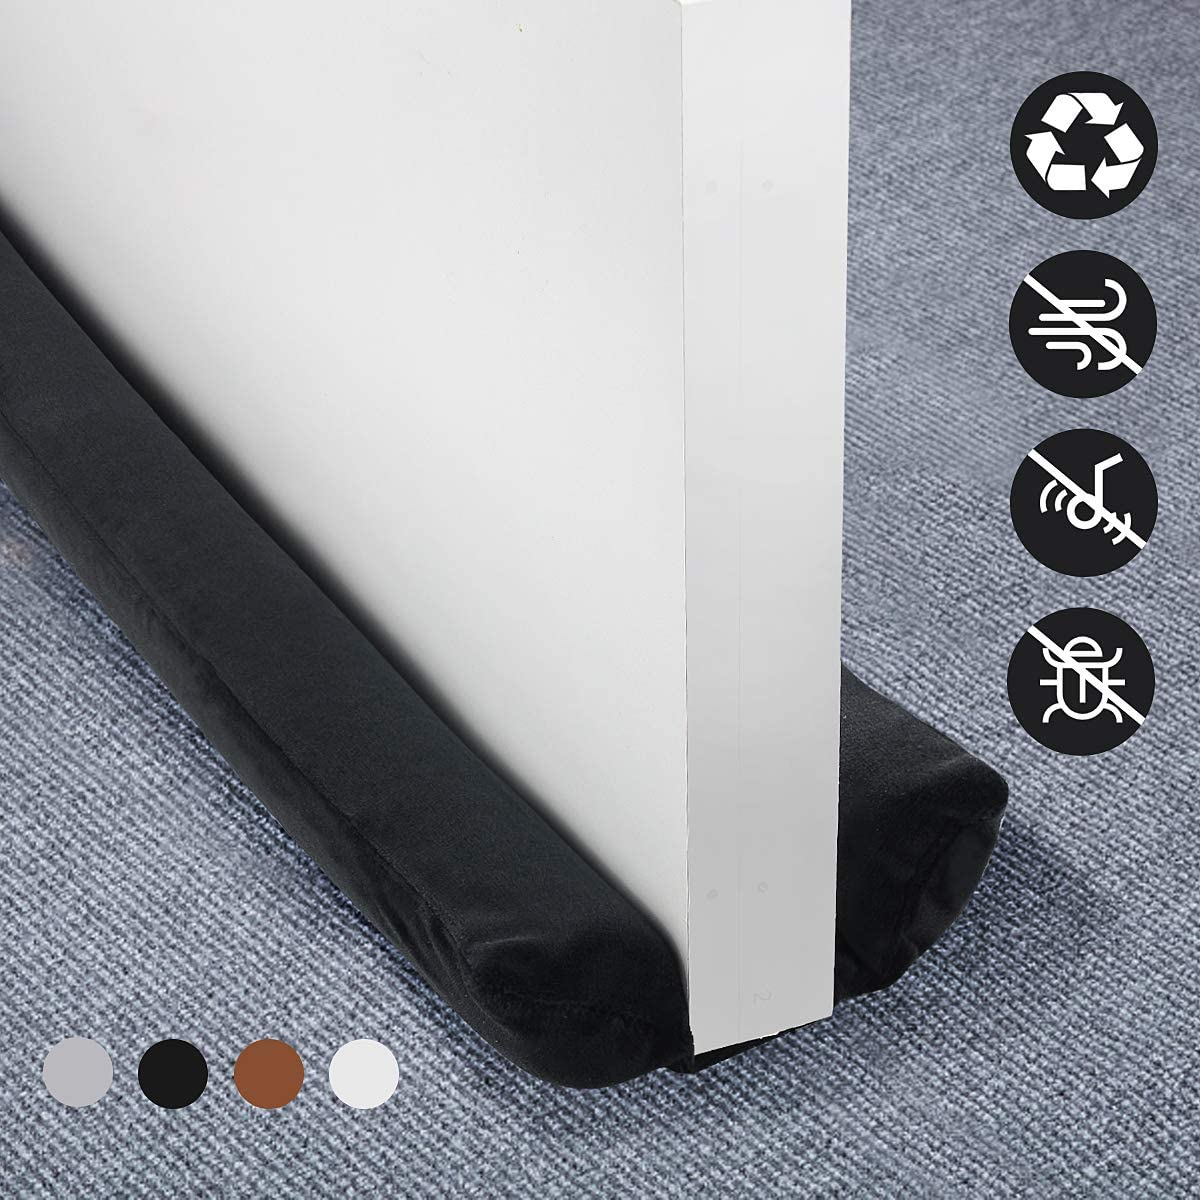 "Door Draft Stopper - Weather Stripping Noise Blocker Door Seal Strip, Adjustable 34"" to 36"" for Sound Dust Proof, Saving Energy Under Door Guard (Black)"